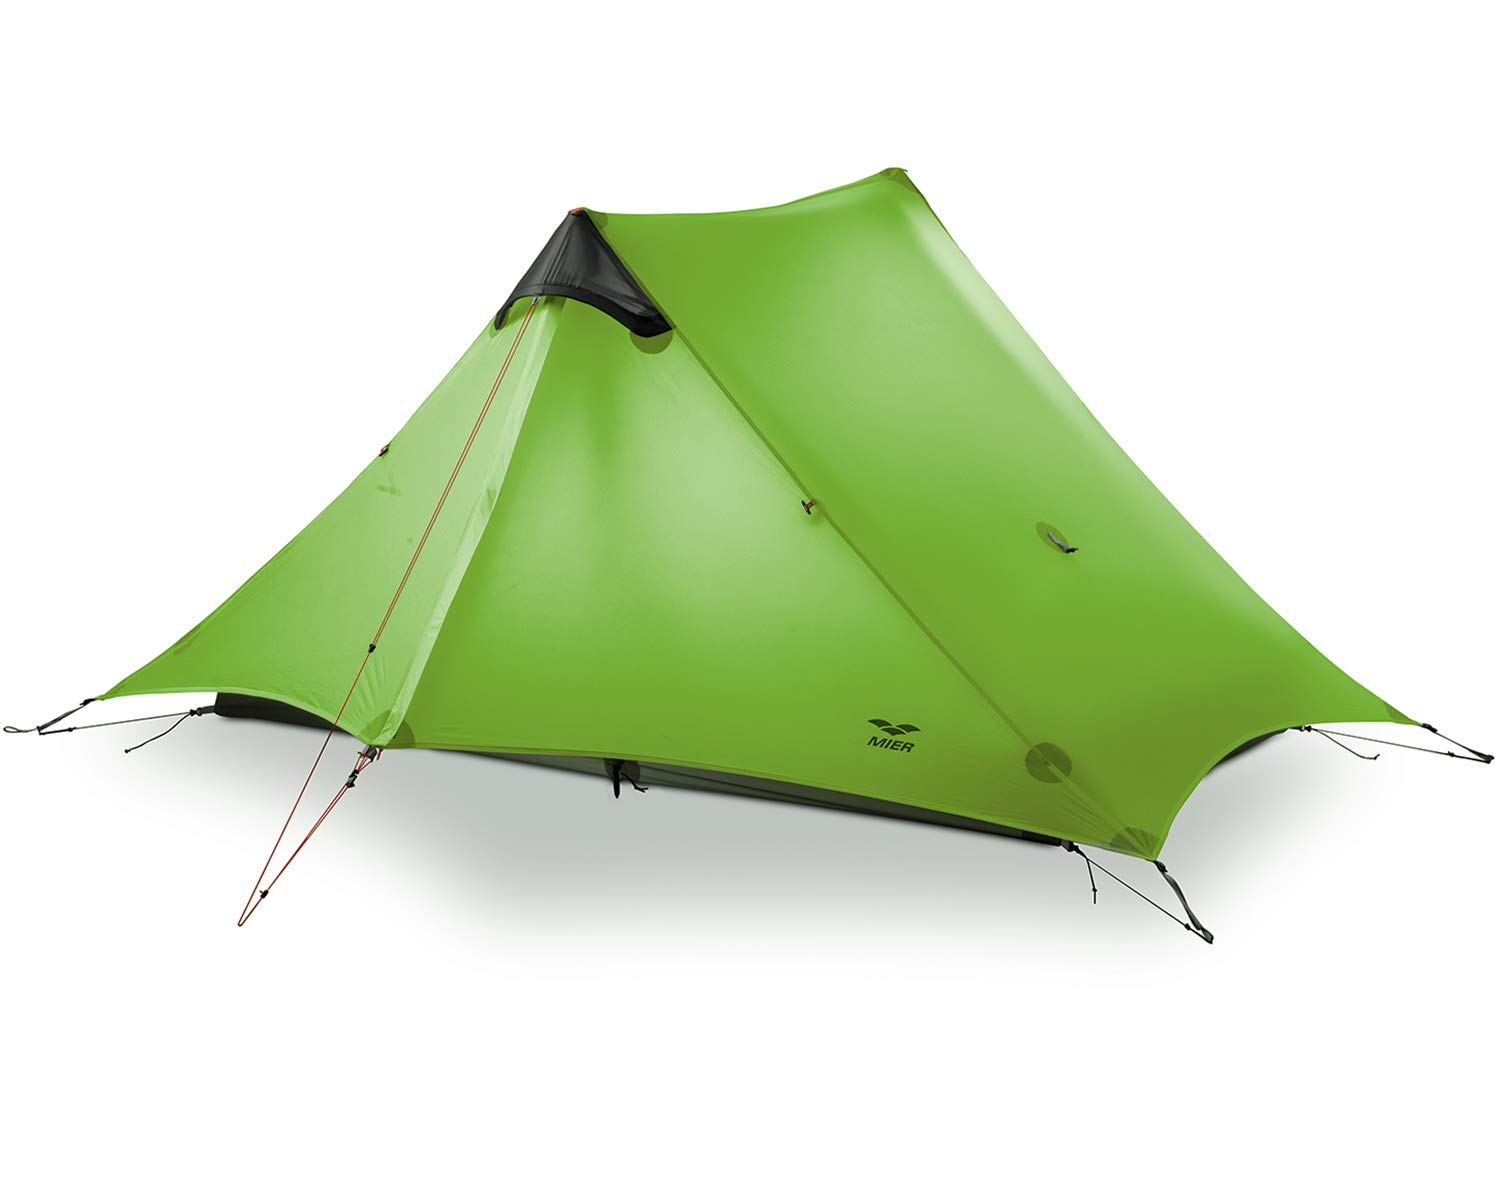 MIER Ultralight Tent 3-Season Backpacking Tent for 1-Person or 2-Person Camping, Trekking, Kayaking, Climbing, Hiking (Trekking Pole is NOT Included), Green, 2-Person by MIER